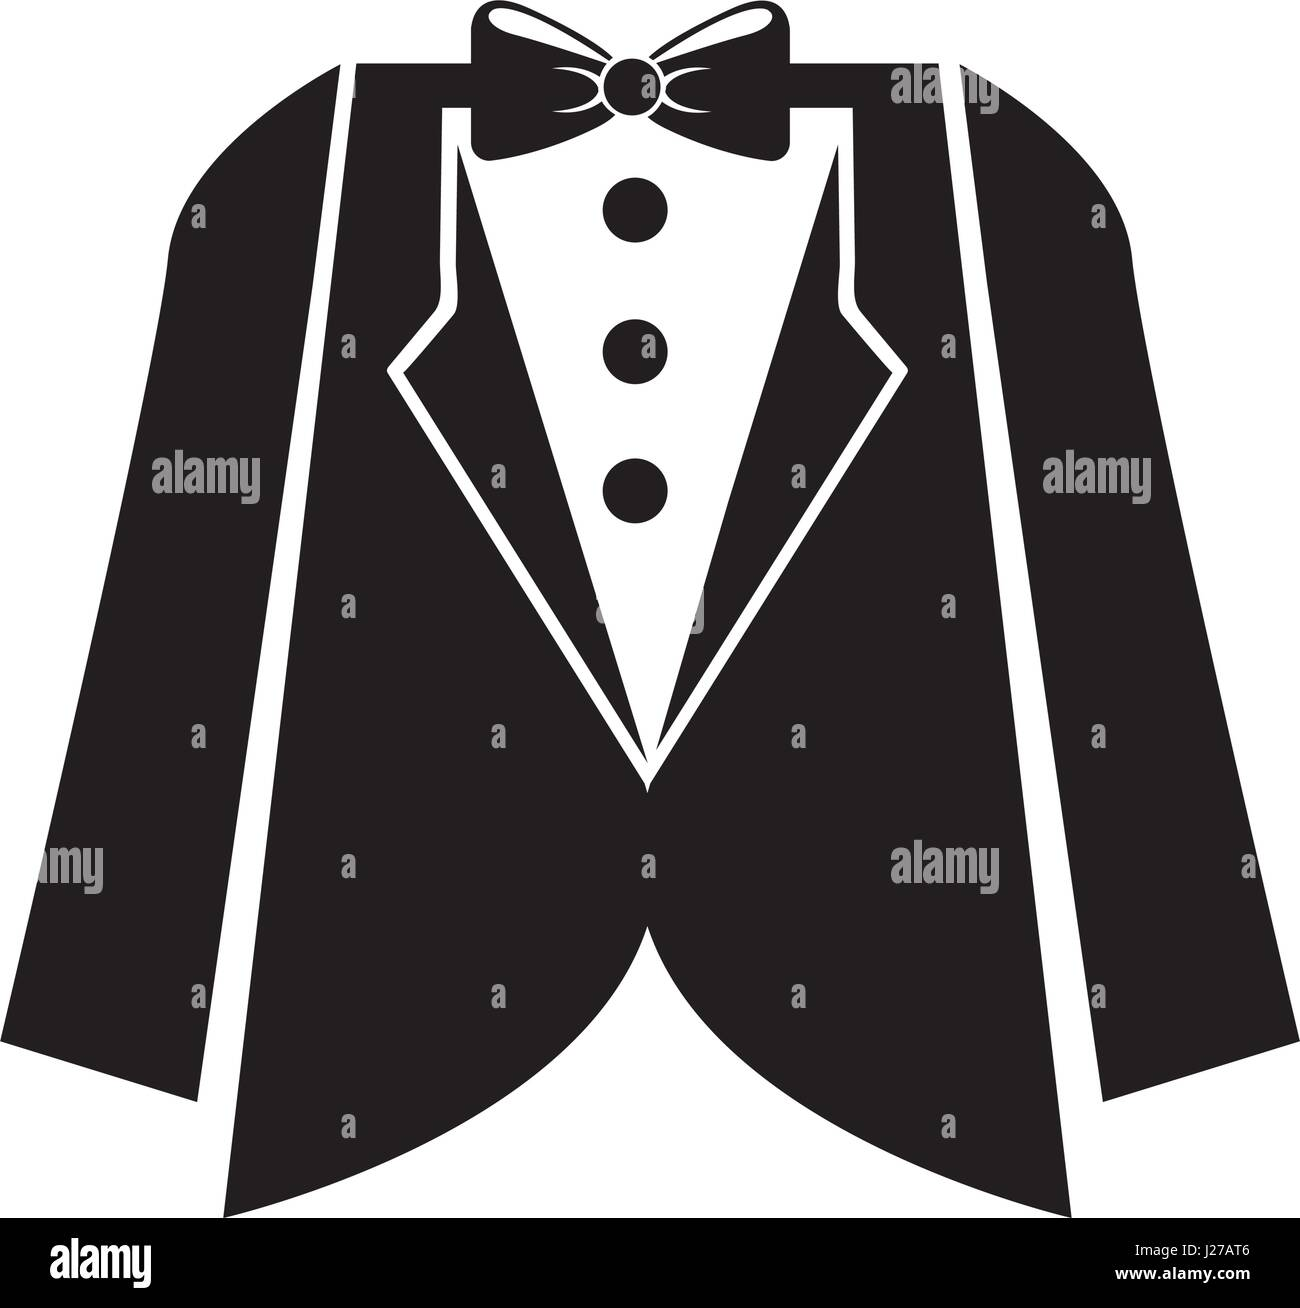 elegant masculine suit clothes icon - Stock Image